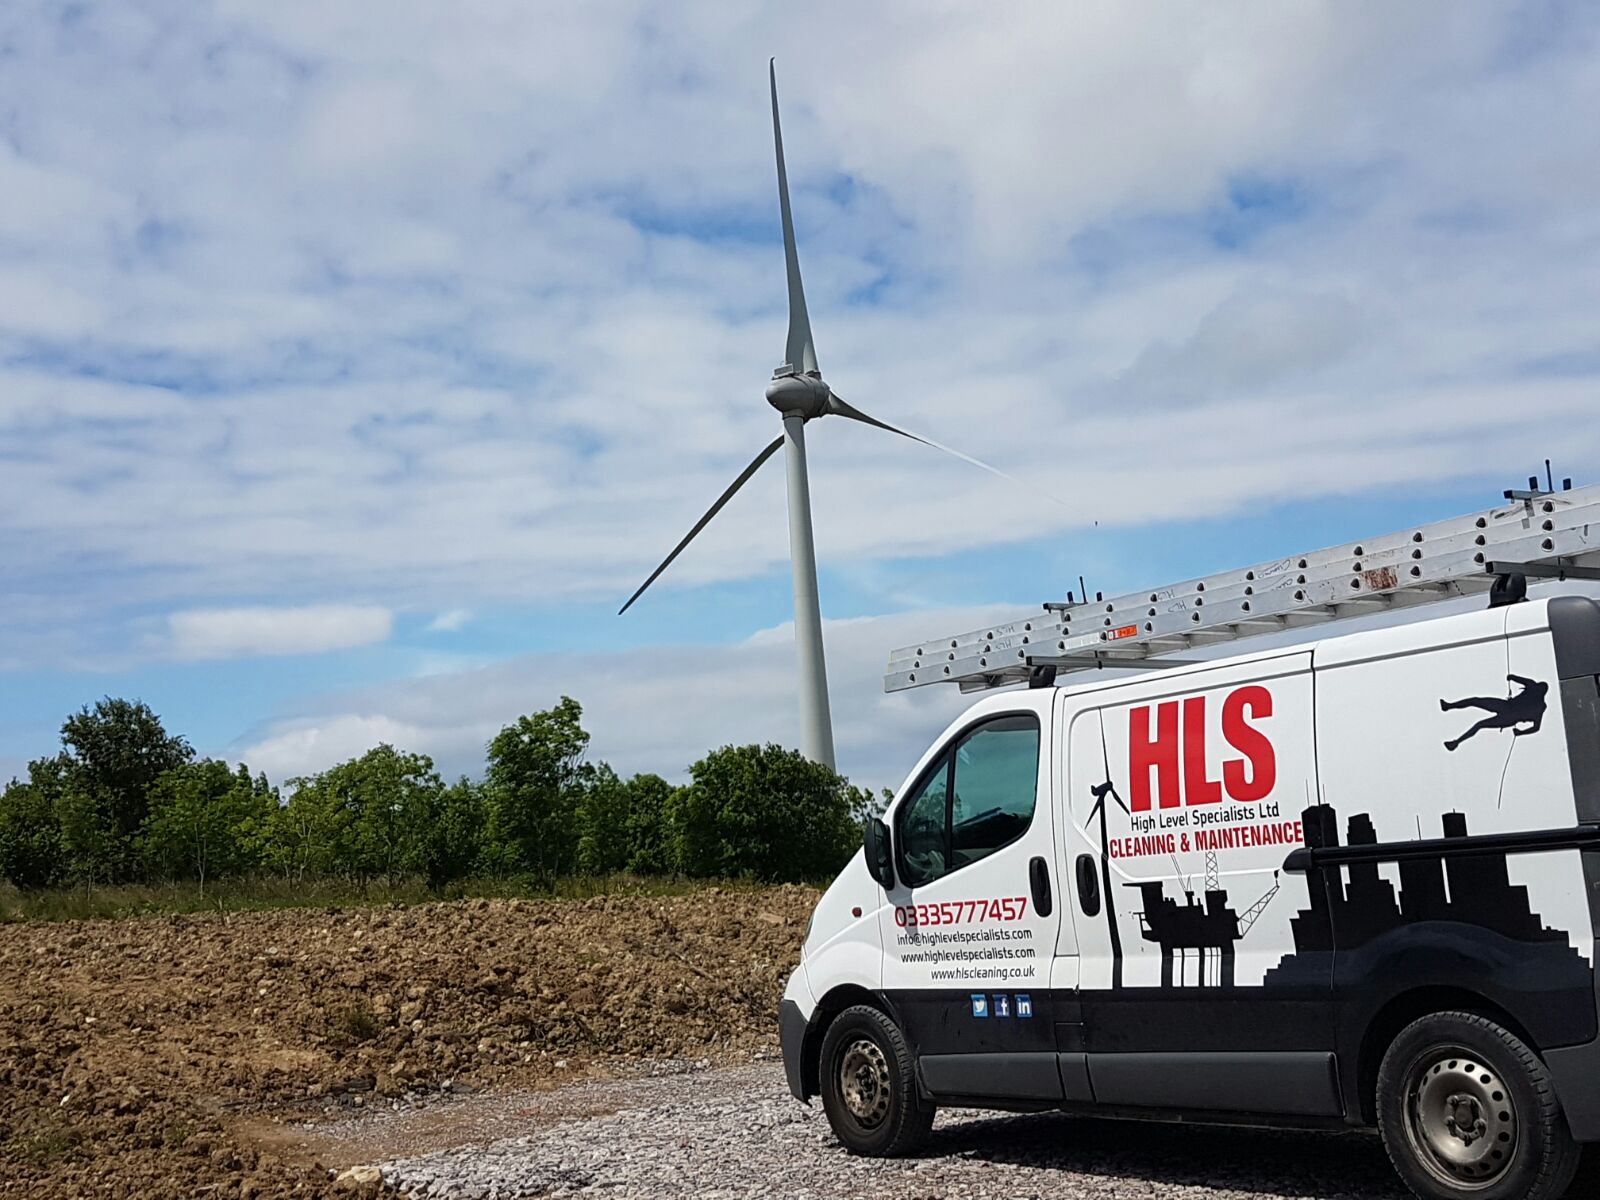 Windfarm maintenance - Renewable Energy - High level Specialists provide services for windfarms and solar energy providers.